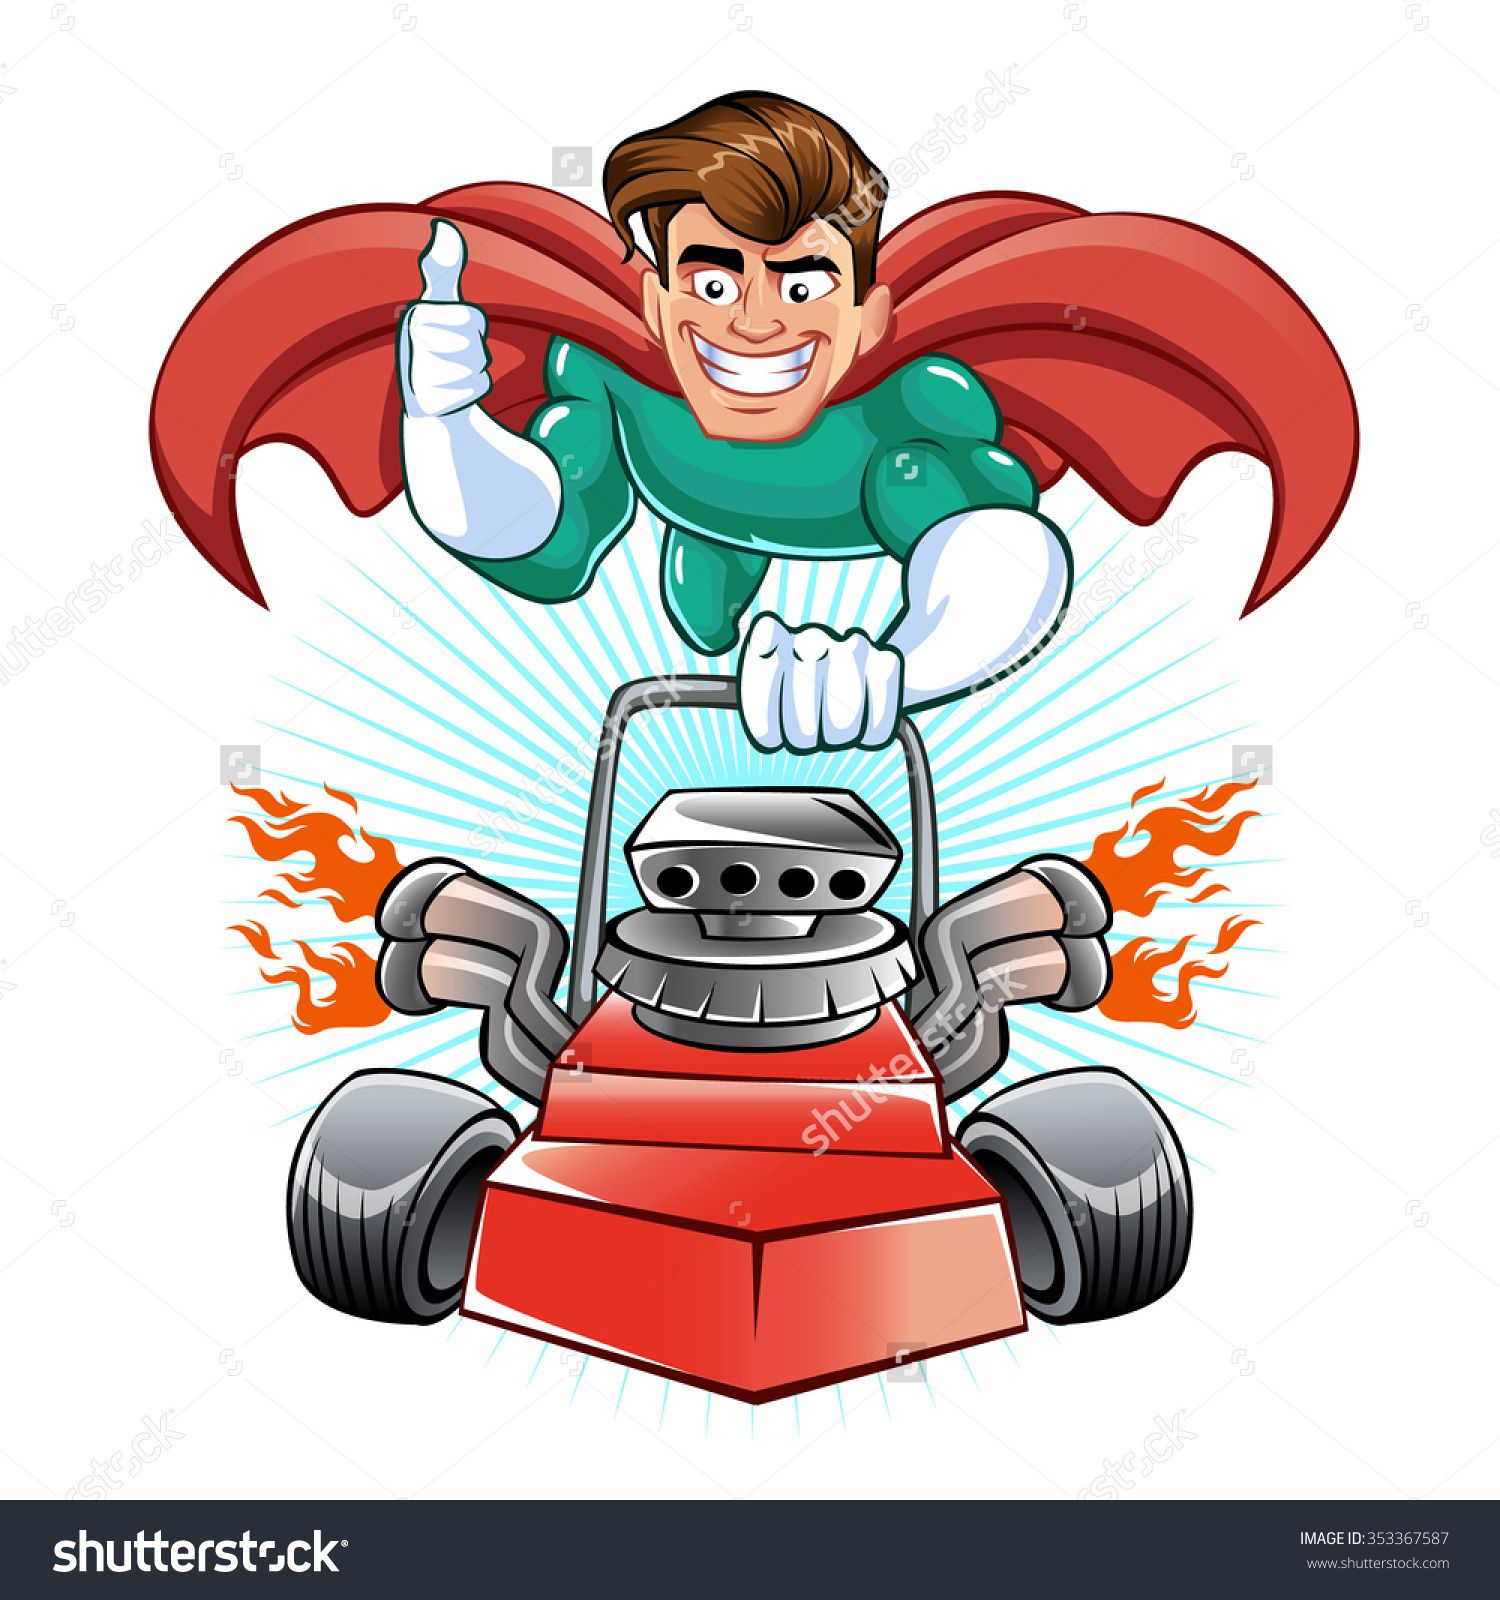 10+ Lawn Mower Animated Clipart